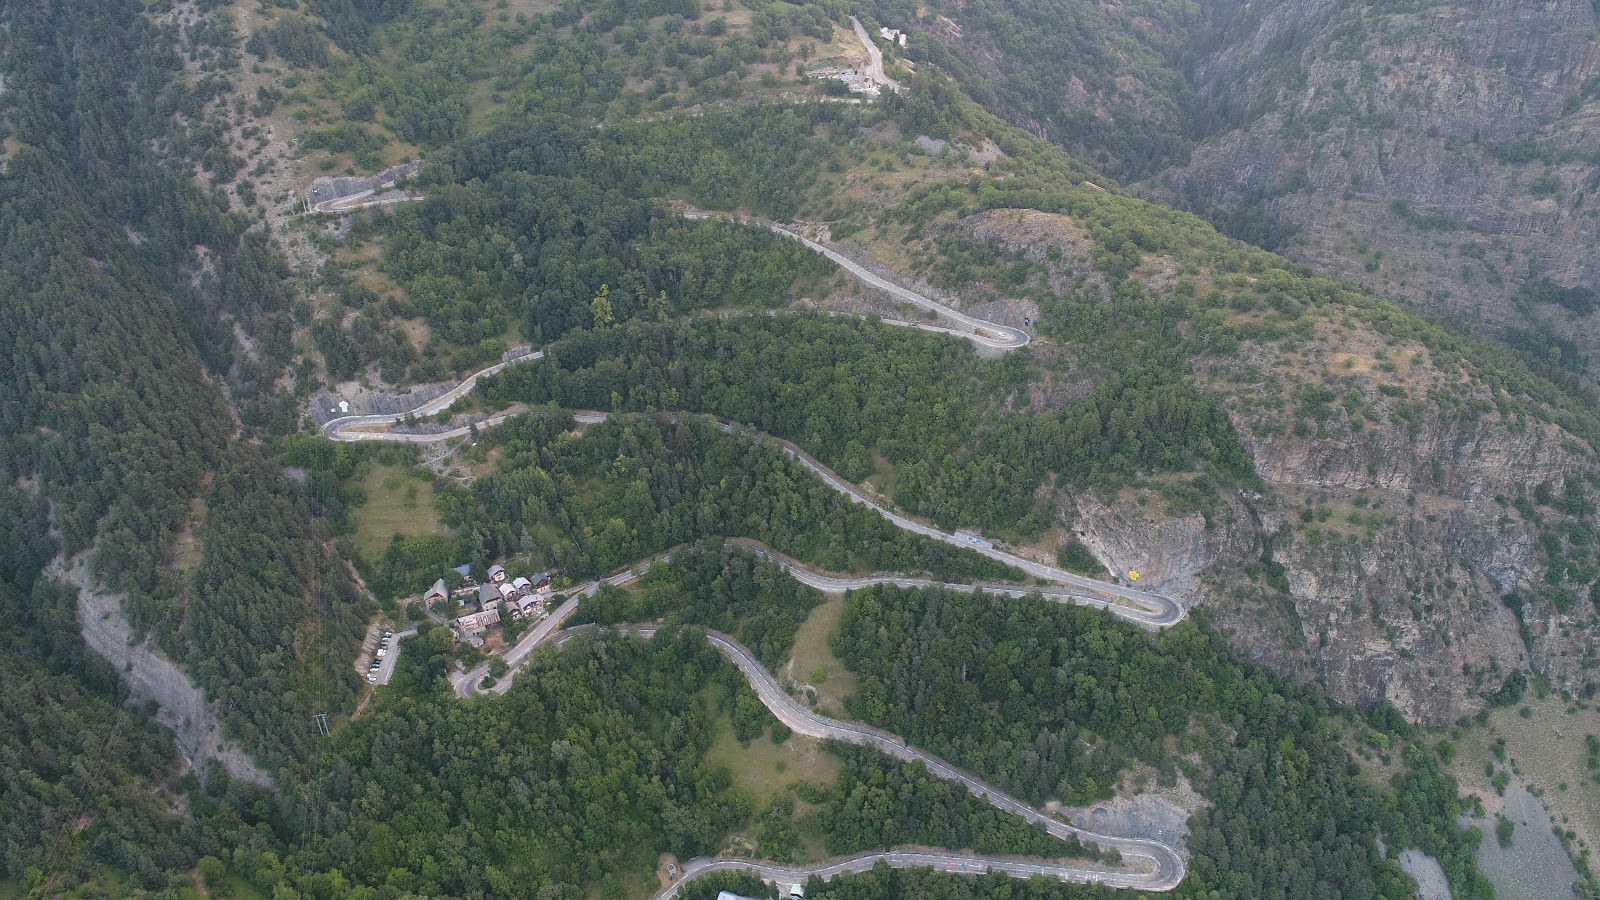 Cycling Alpe d'Huez - aerial view of hairpins - drone photo